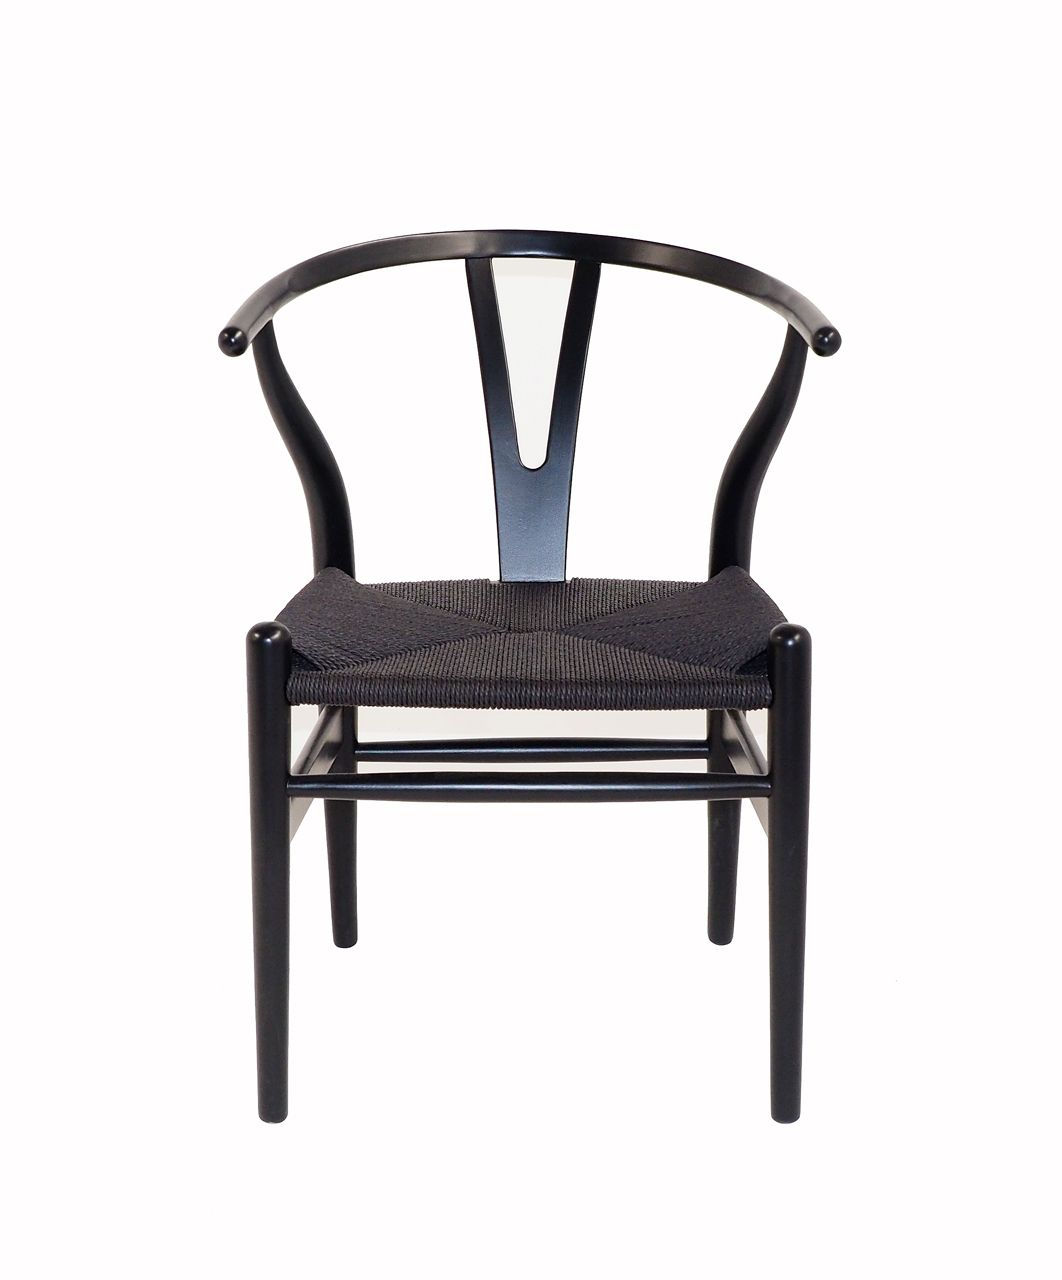 Milano Republic Furniture   Replica Hans Wegner Wishbone Chair   Black  Frame (grain Not Visible